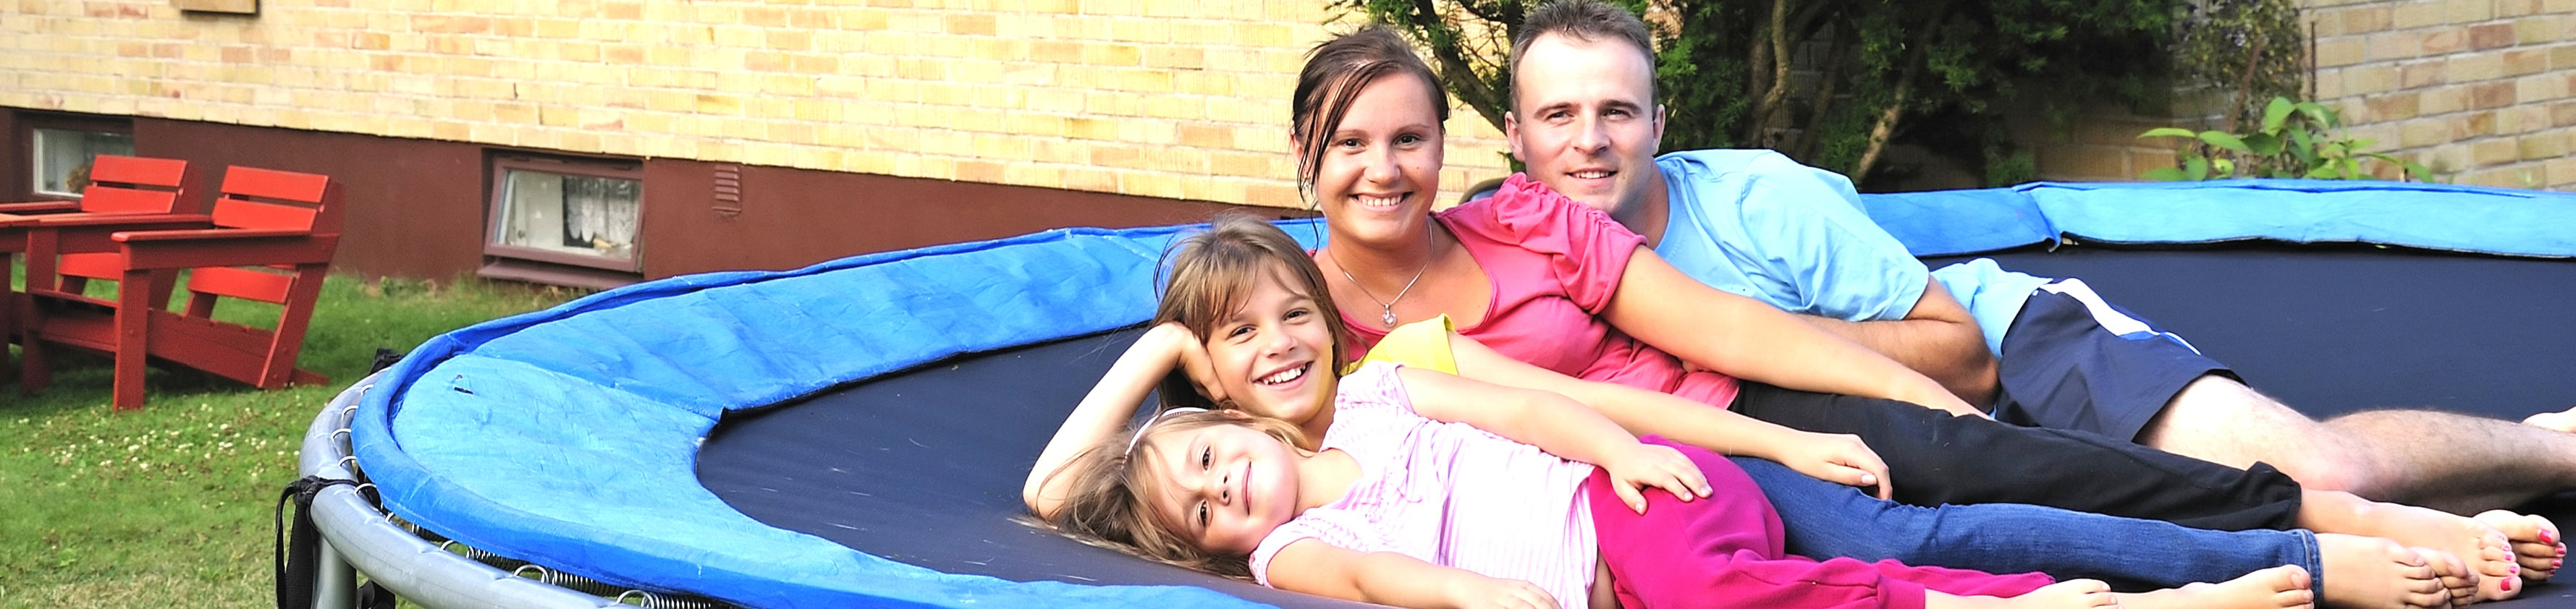 Family smiling on an outdoor trampoline